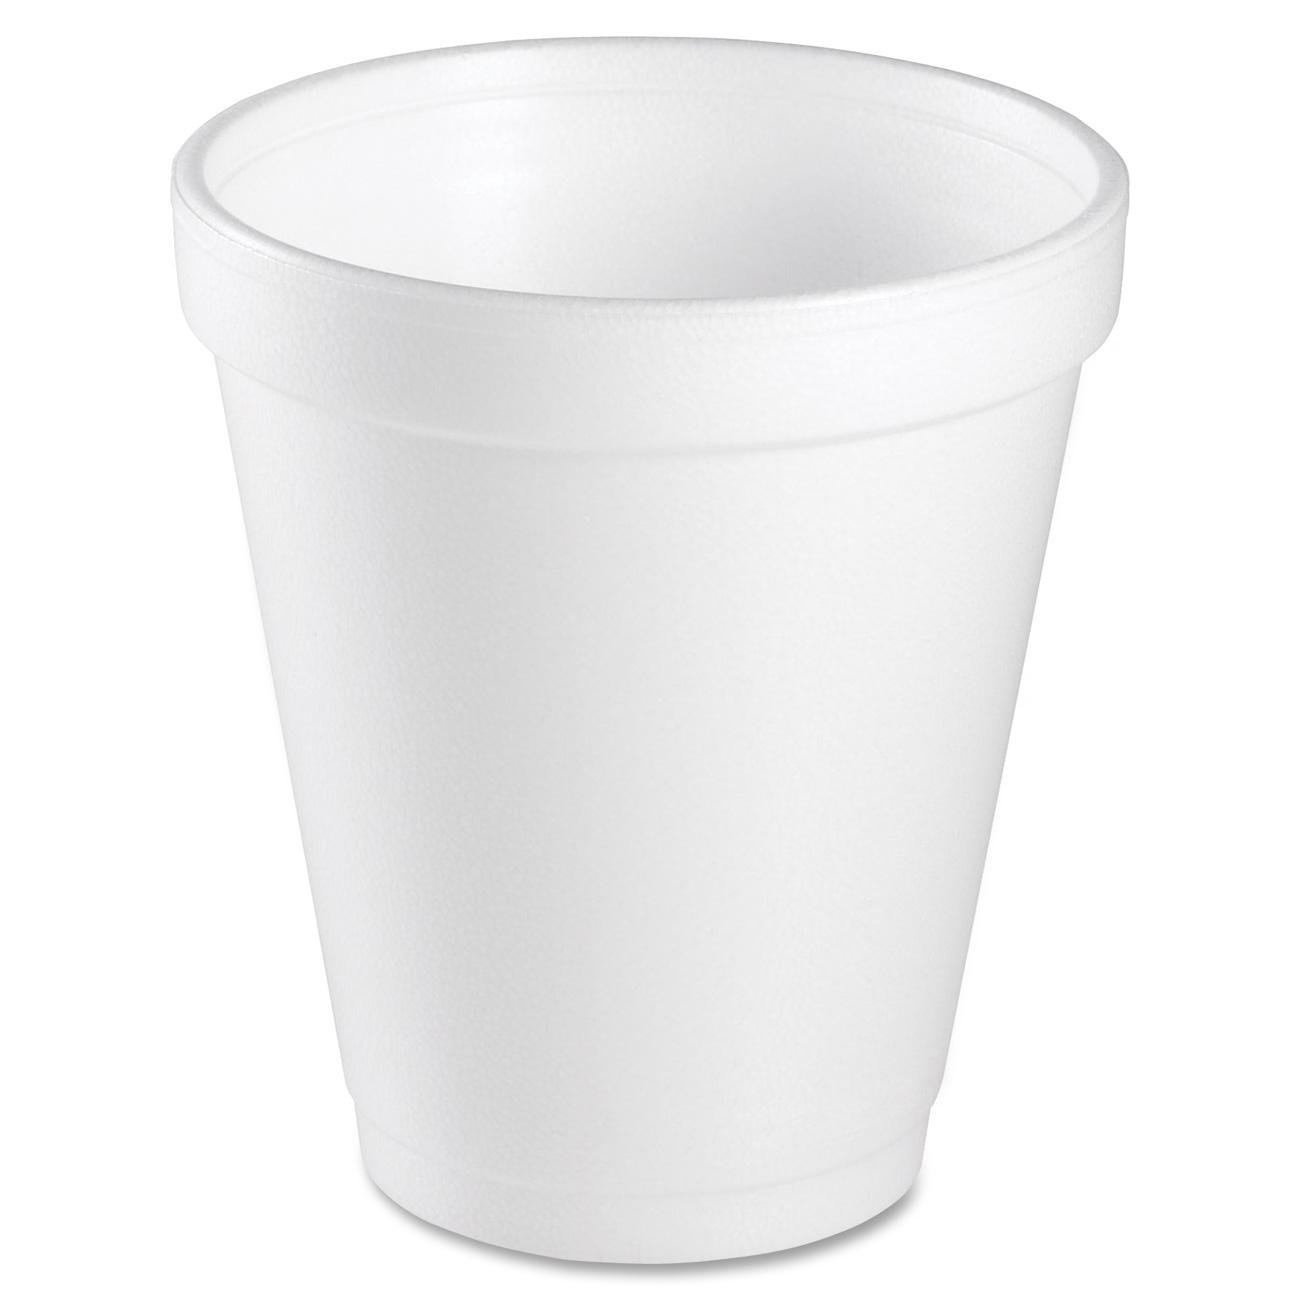 1121 Cups free clipart.